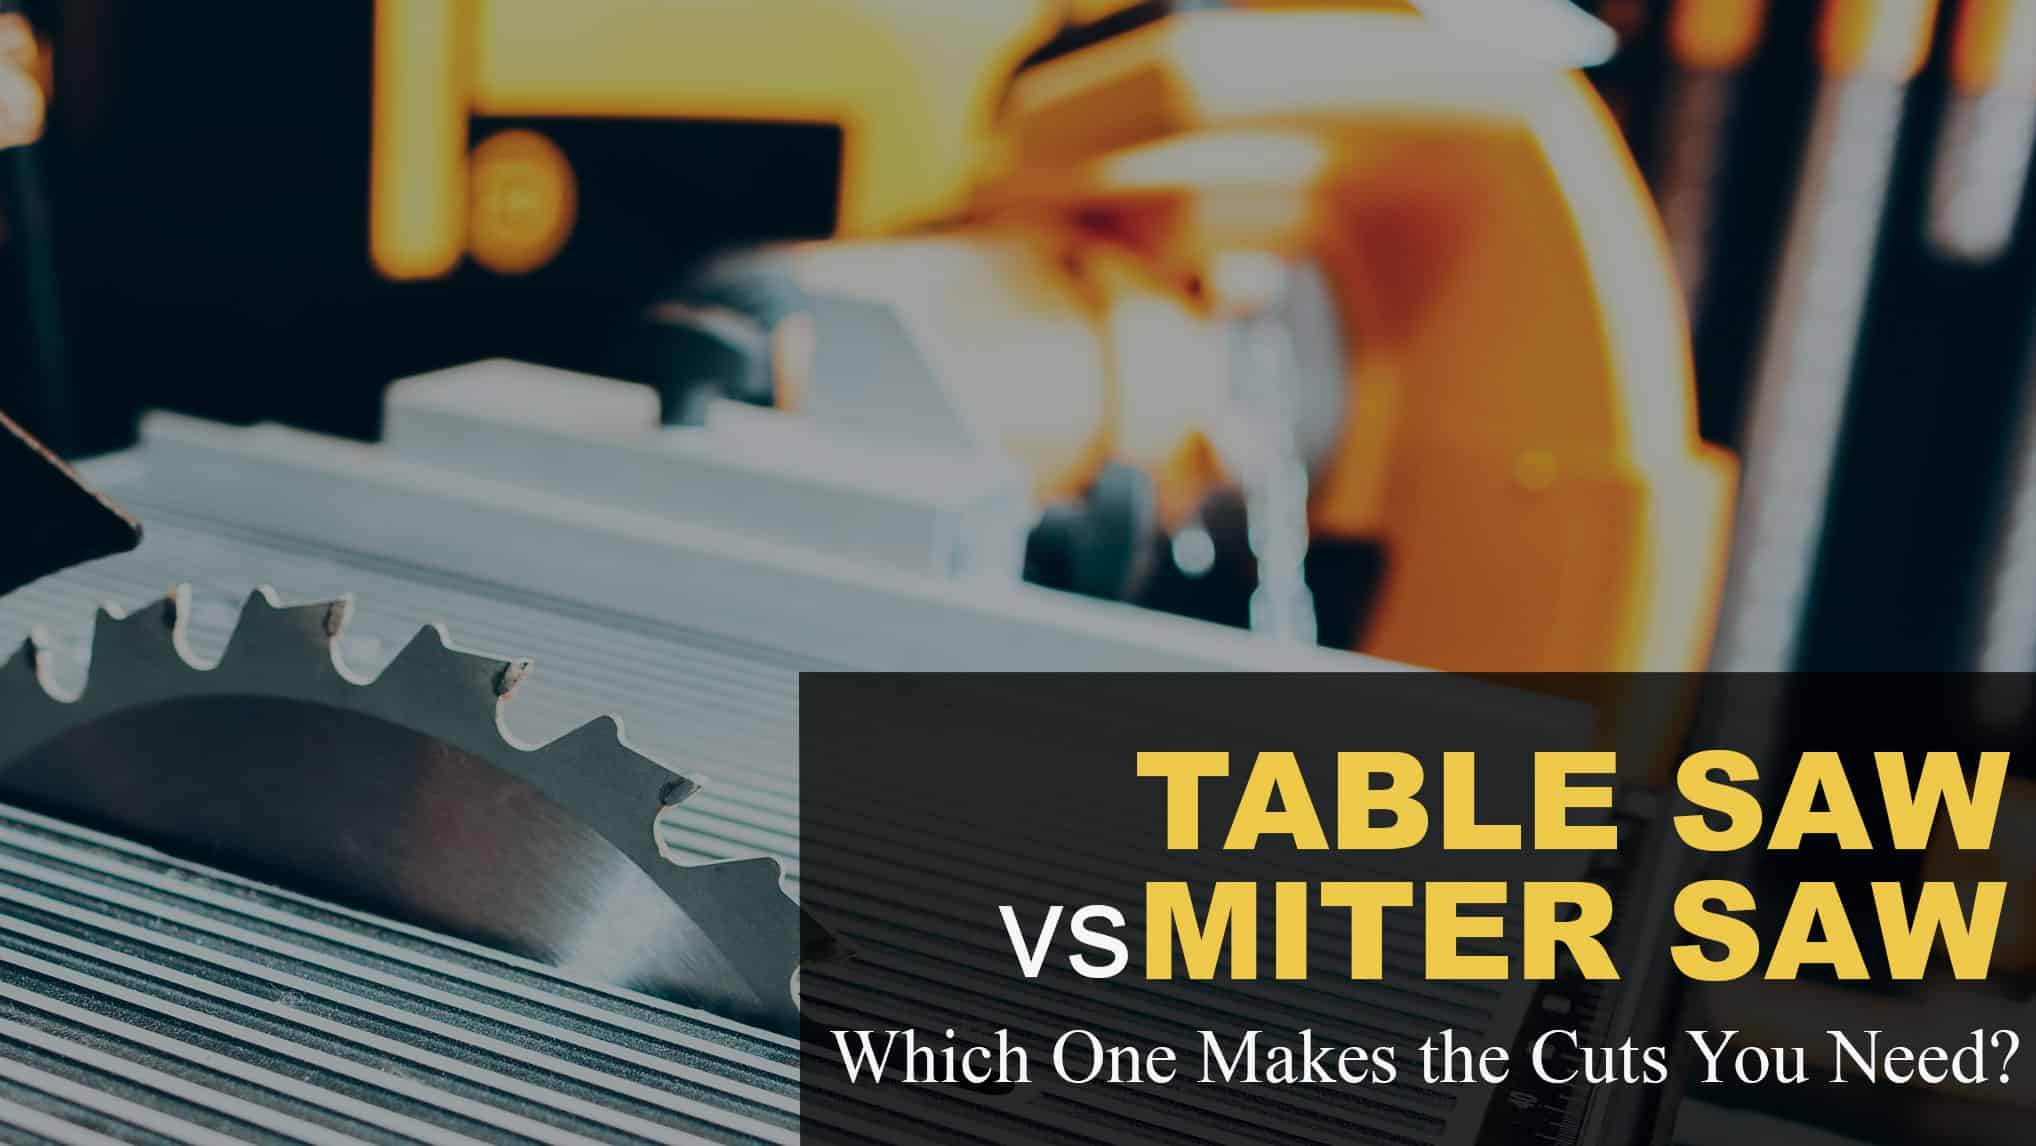 Table Saw vs Miter Saw - Which One Makes the Cuts You Need?